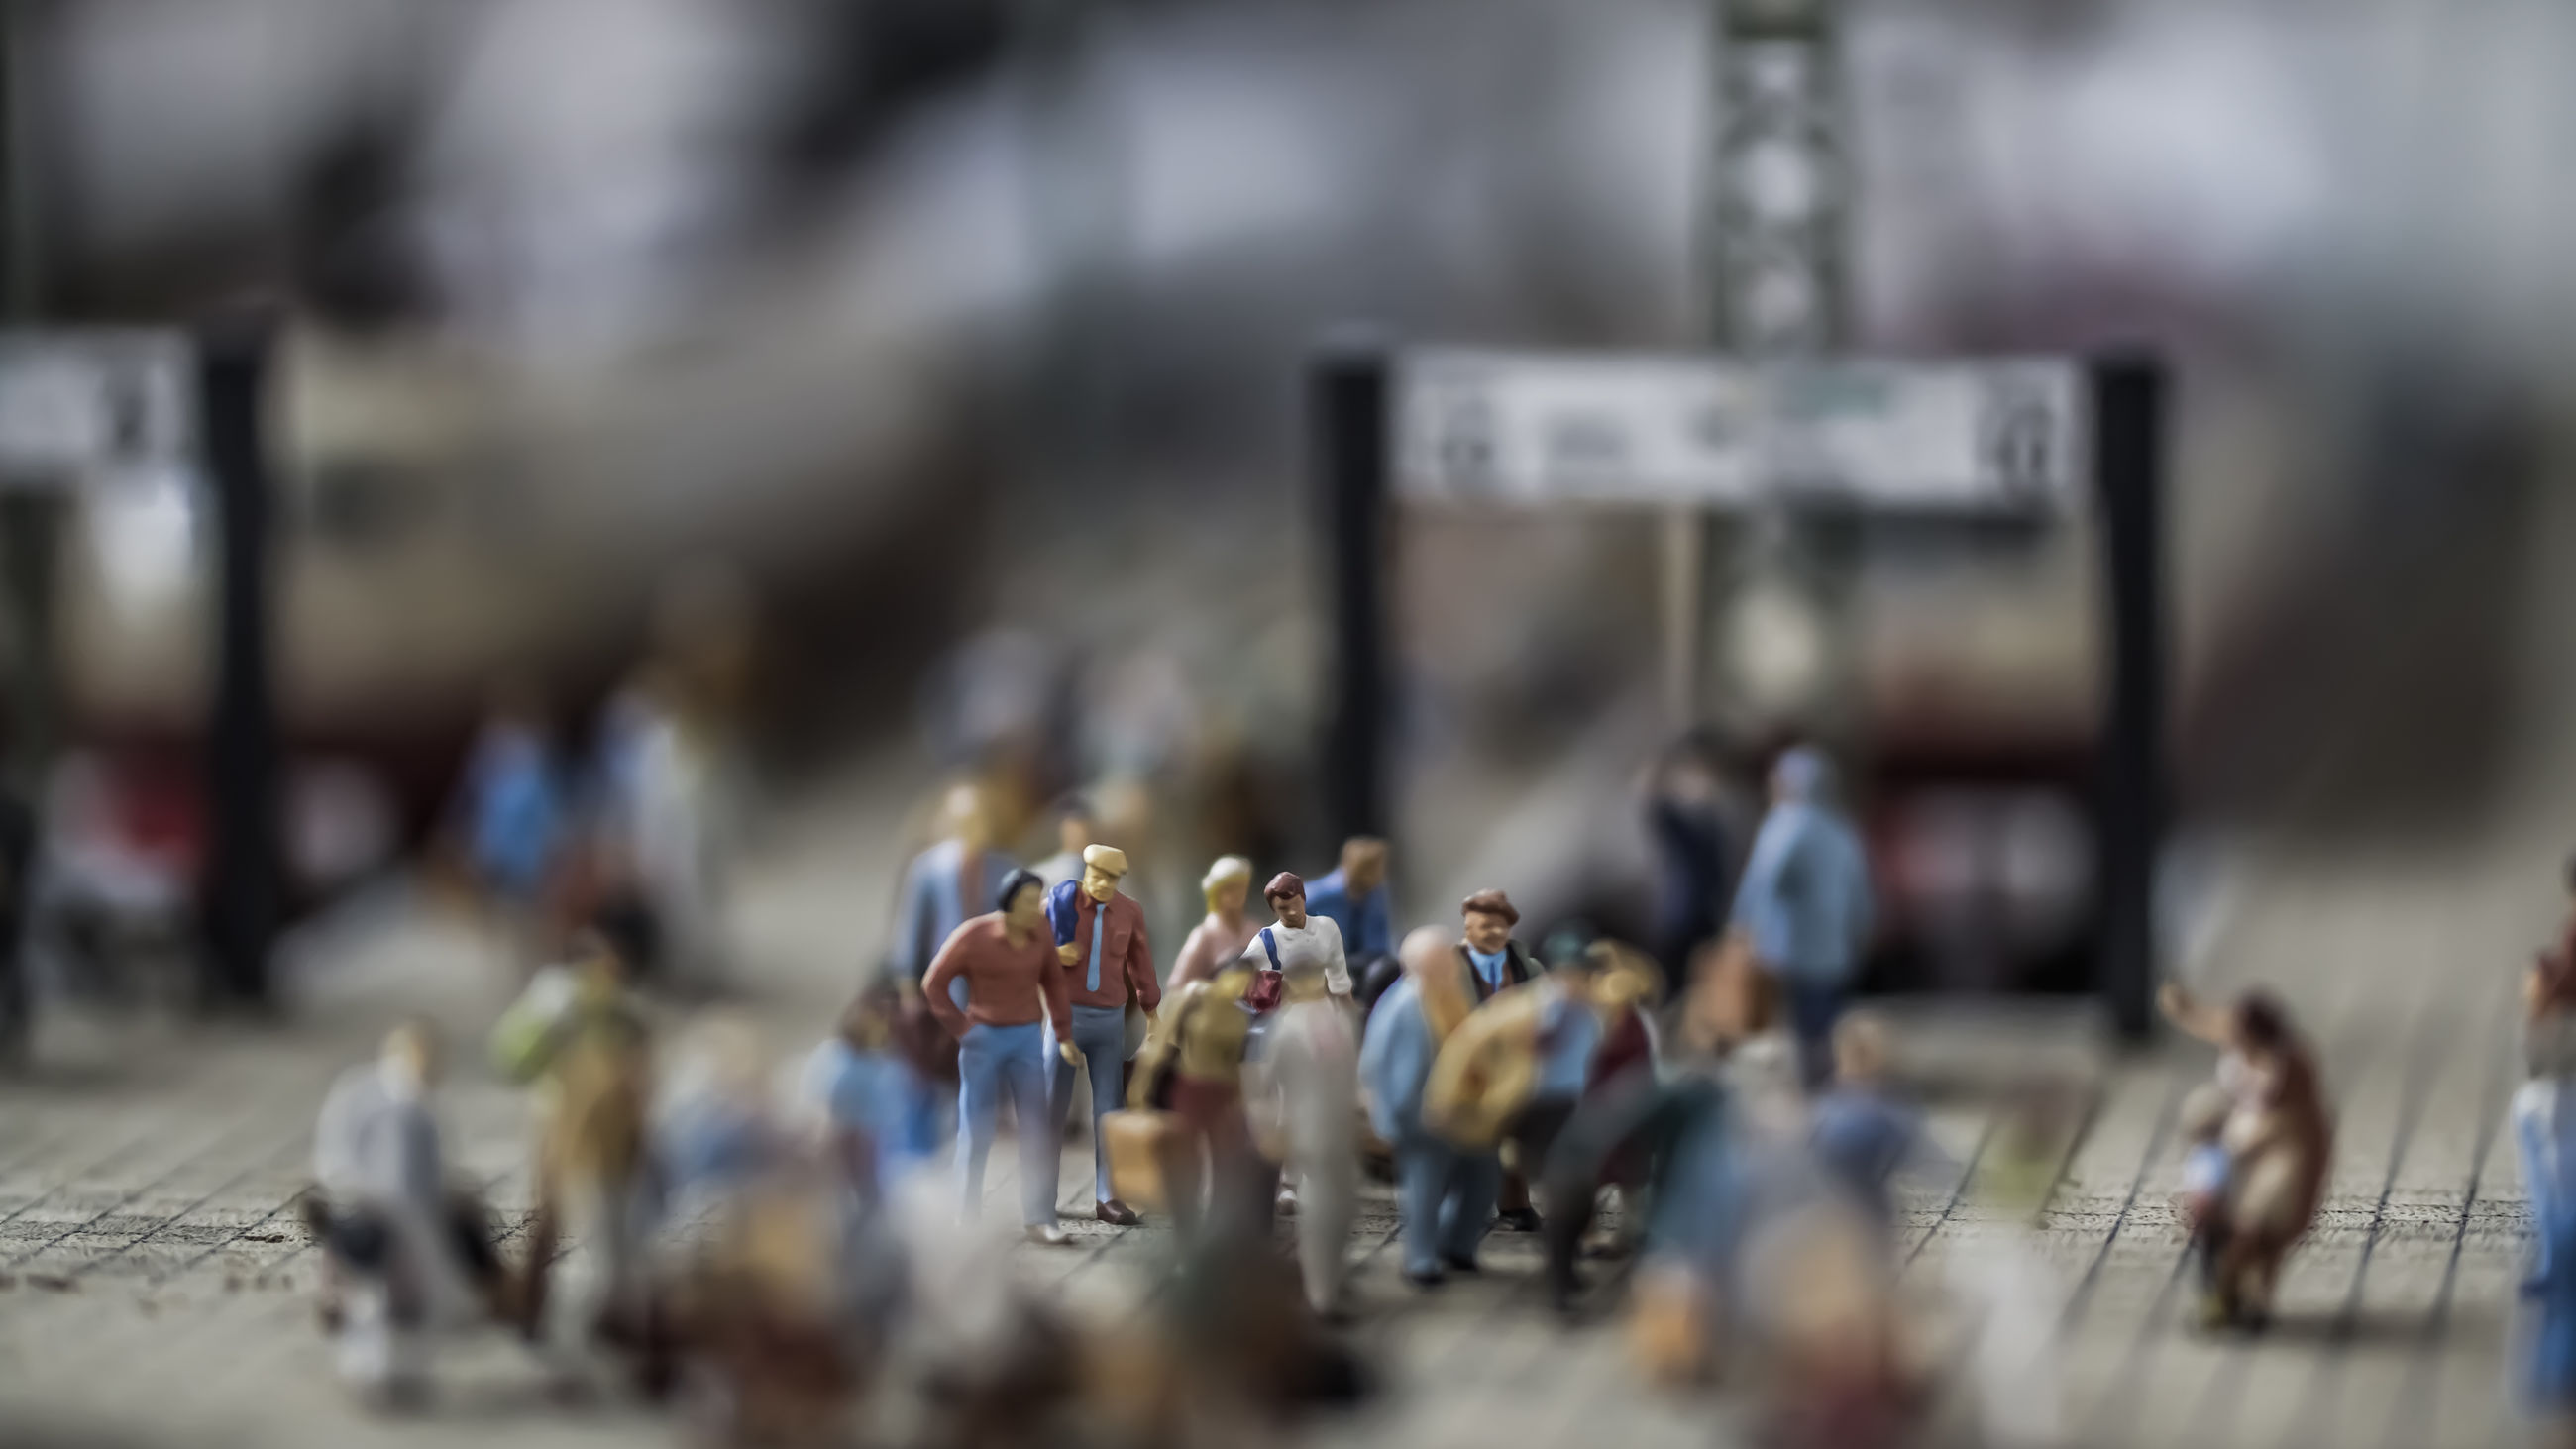 selective focus, real people, group of people, crowd, large group of people, day, adult, city, lifestyles, outdoors, men, women, leisure activity, defocused, street, figurine, armed forces, blurred motion, mixed age range